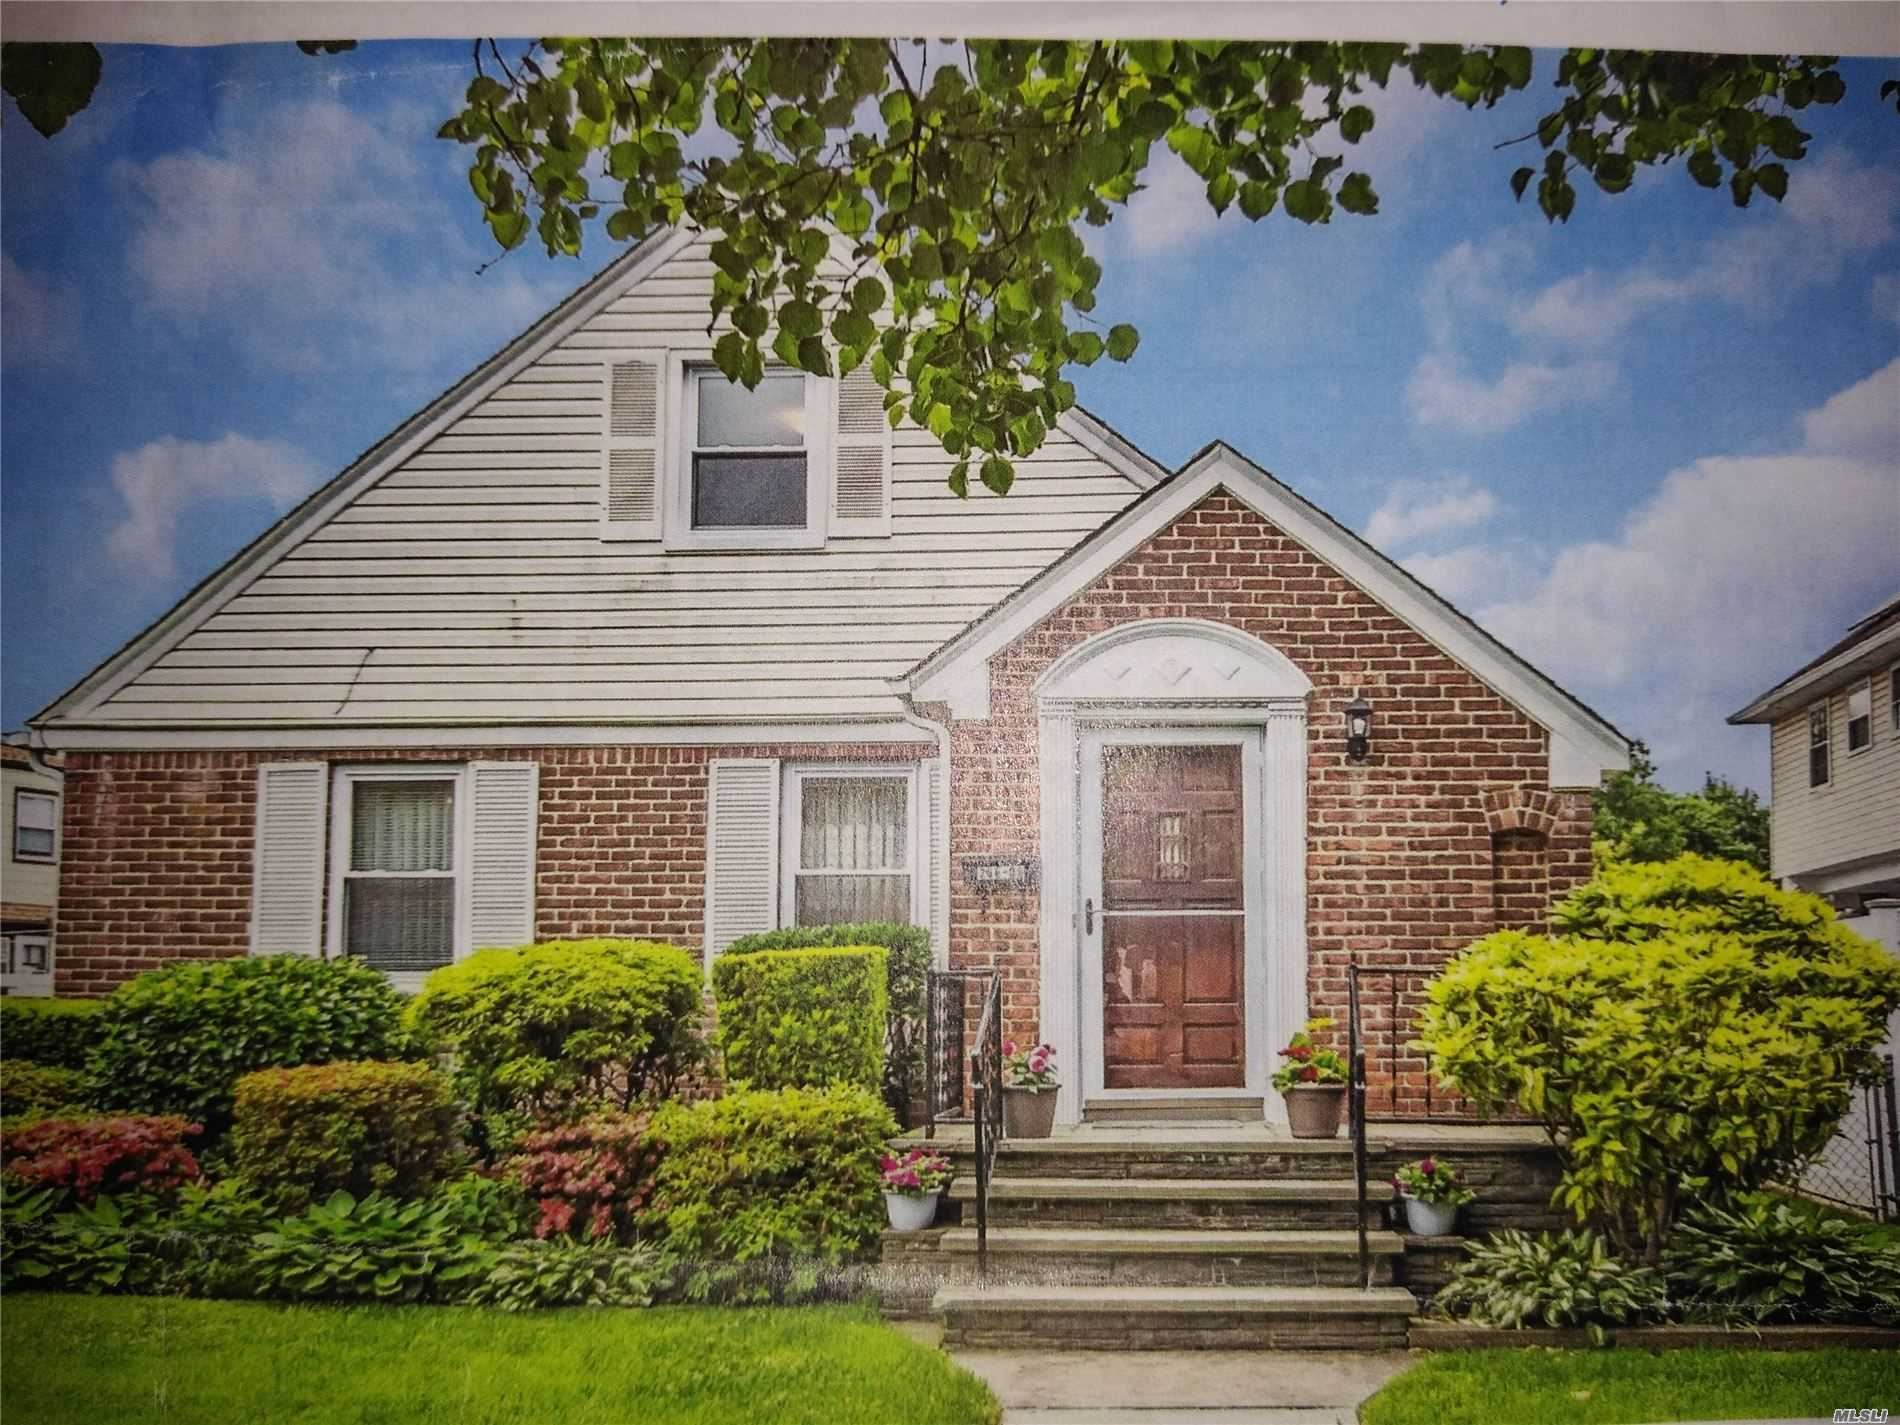 266-08 E Williston Avenue, Floral Park, NY 11001 - MLS#: 3171394